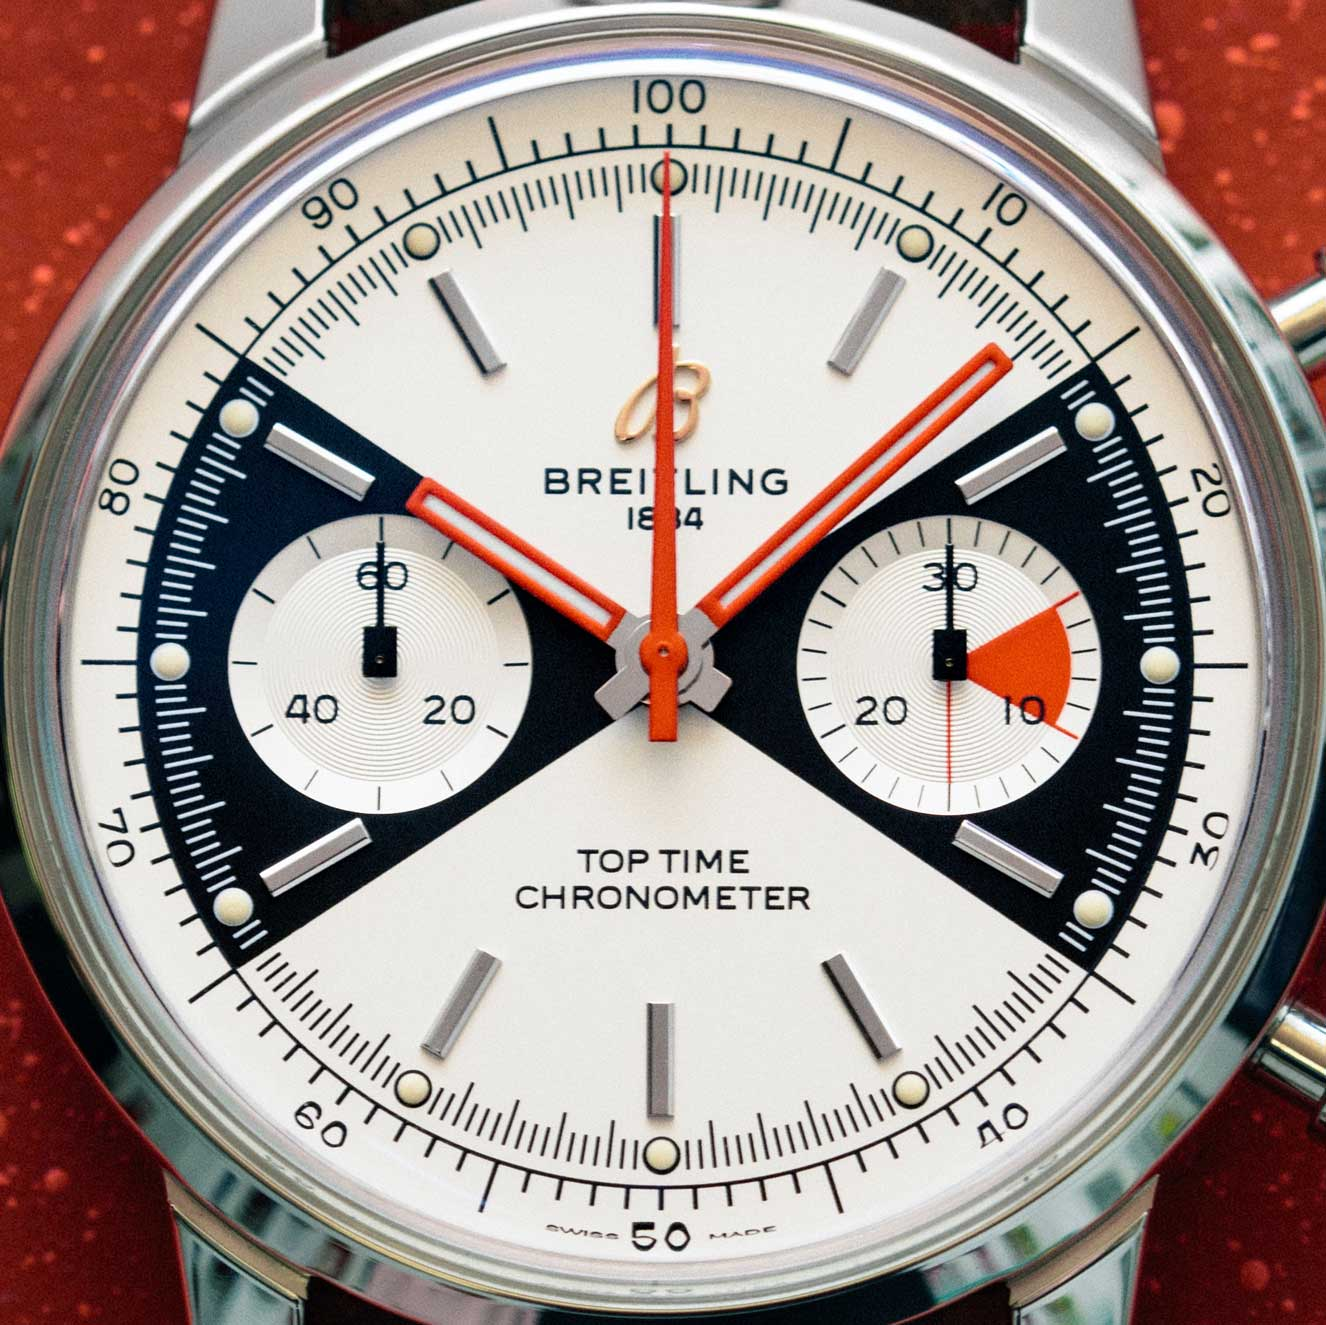 The 'Zorro' dial design on the 2020 Breitling Top Time Limited edition